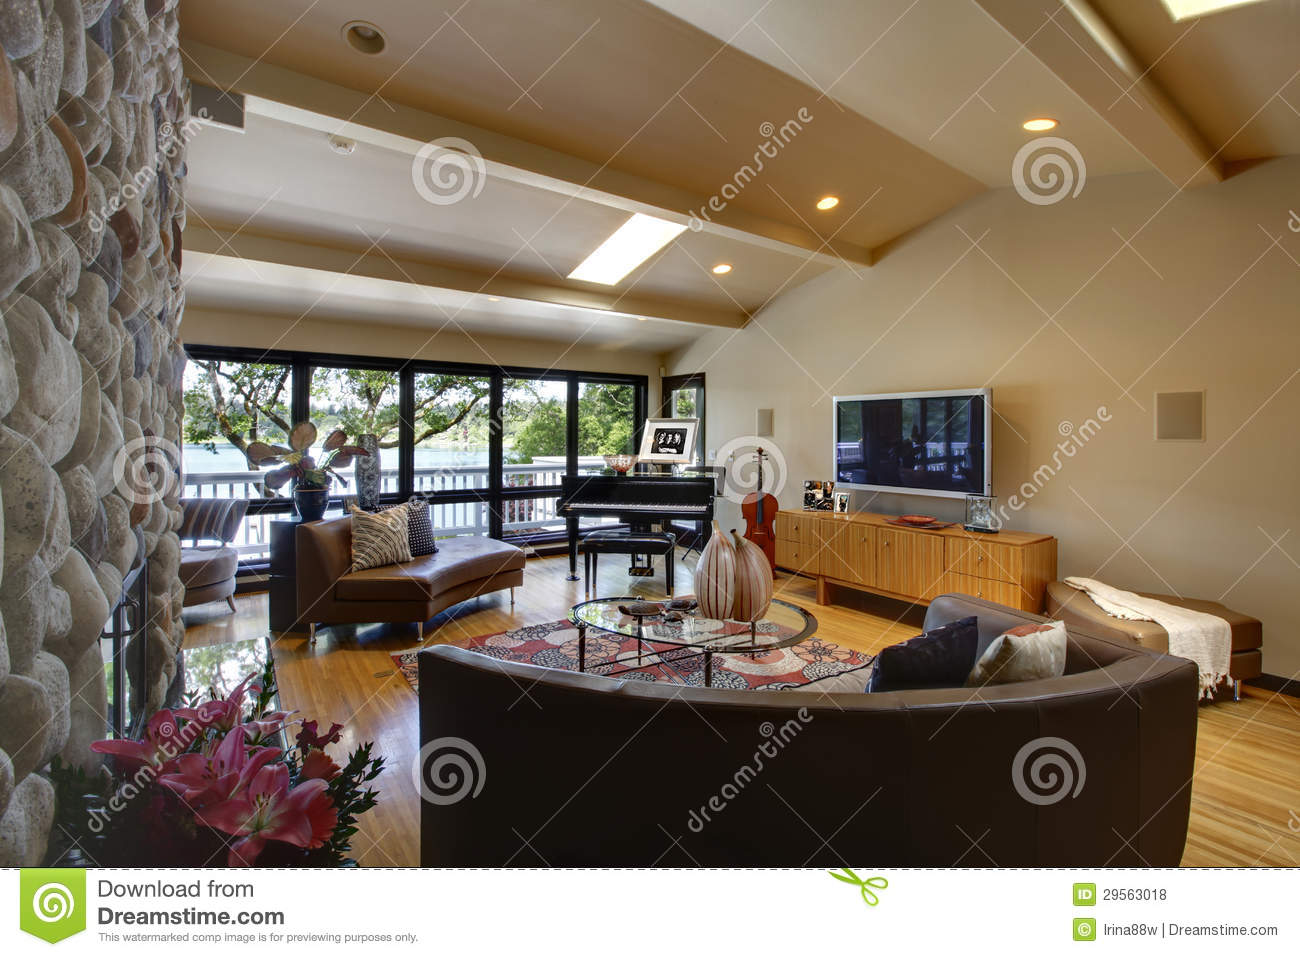 ... luxury home interior living room and stone fireplace. Vaulted ceiling